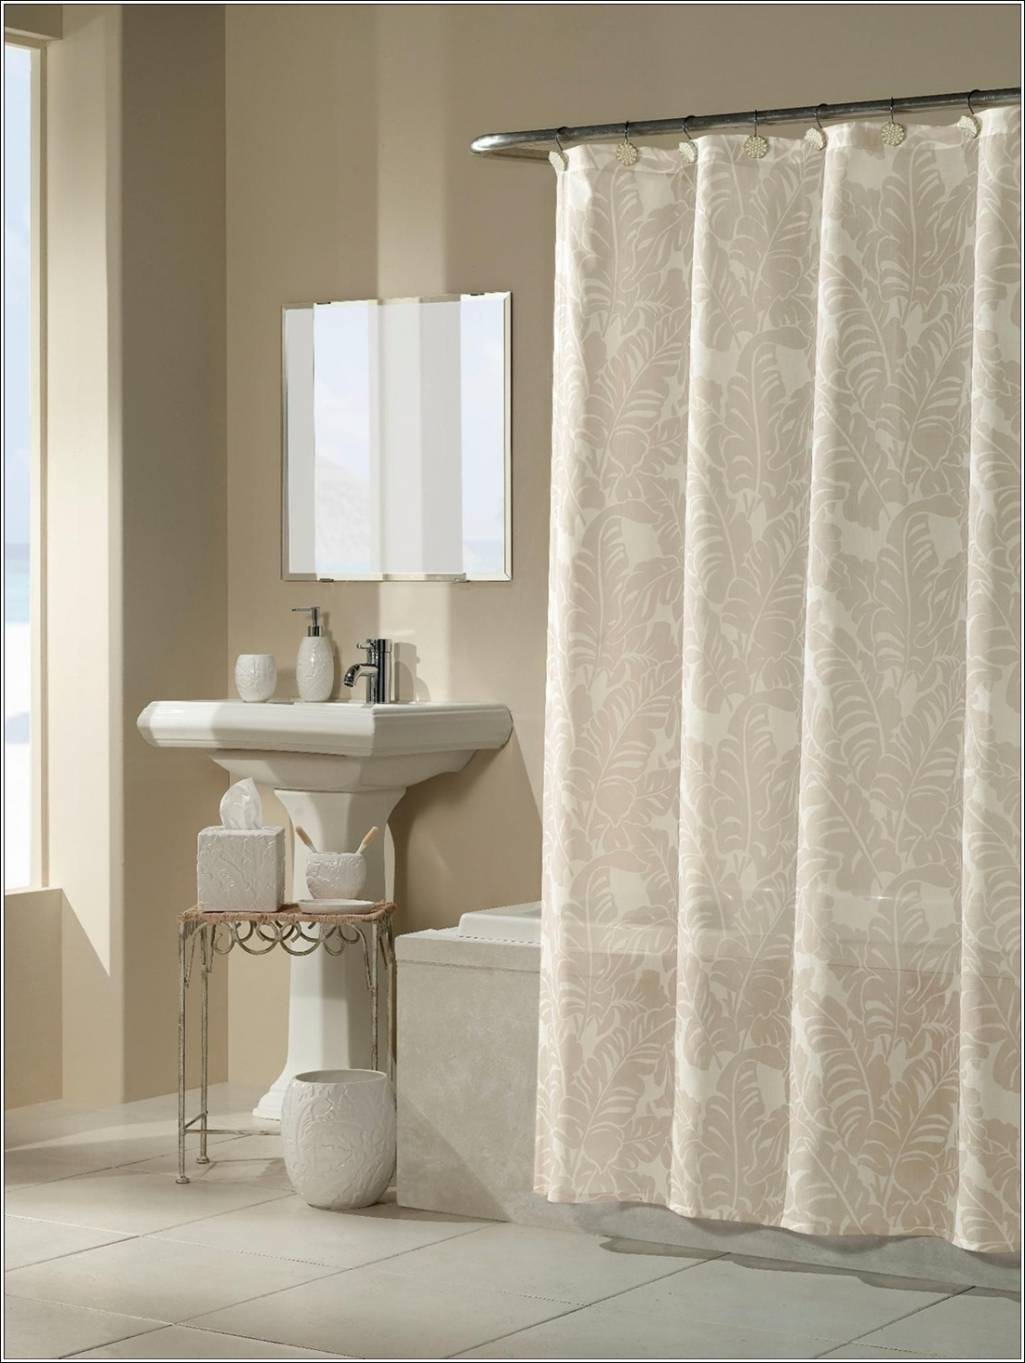 Amazing Interior Design Classy Shower Curtains For Your Bathroom!